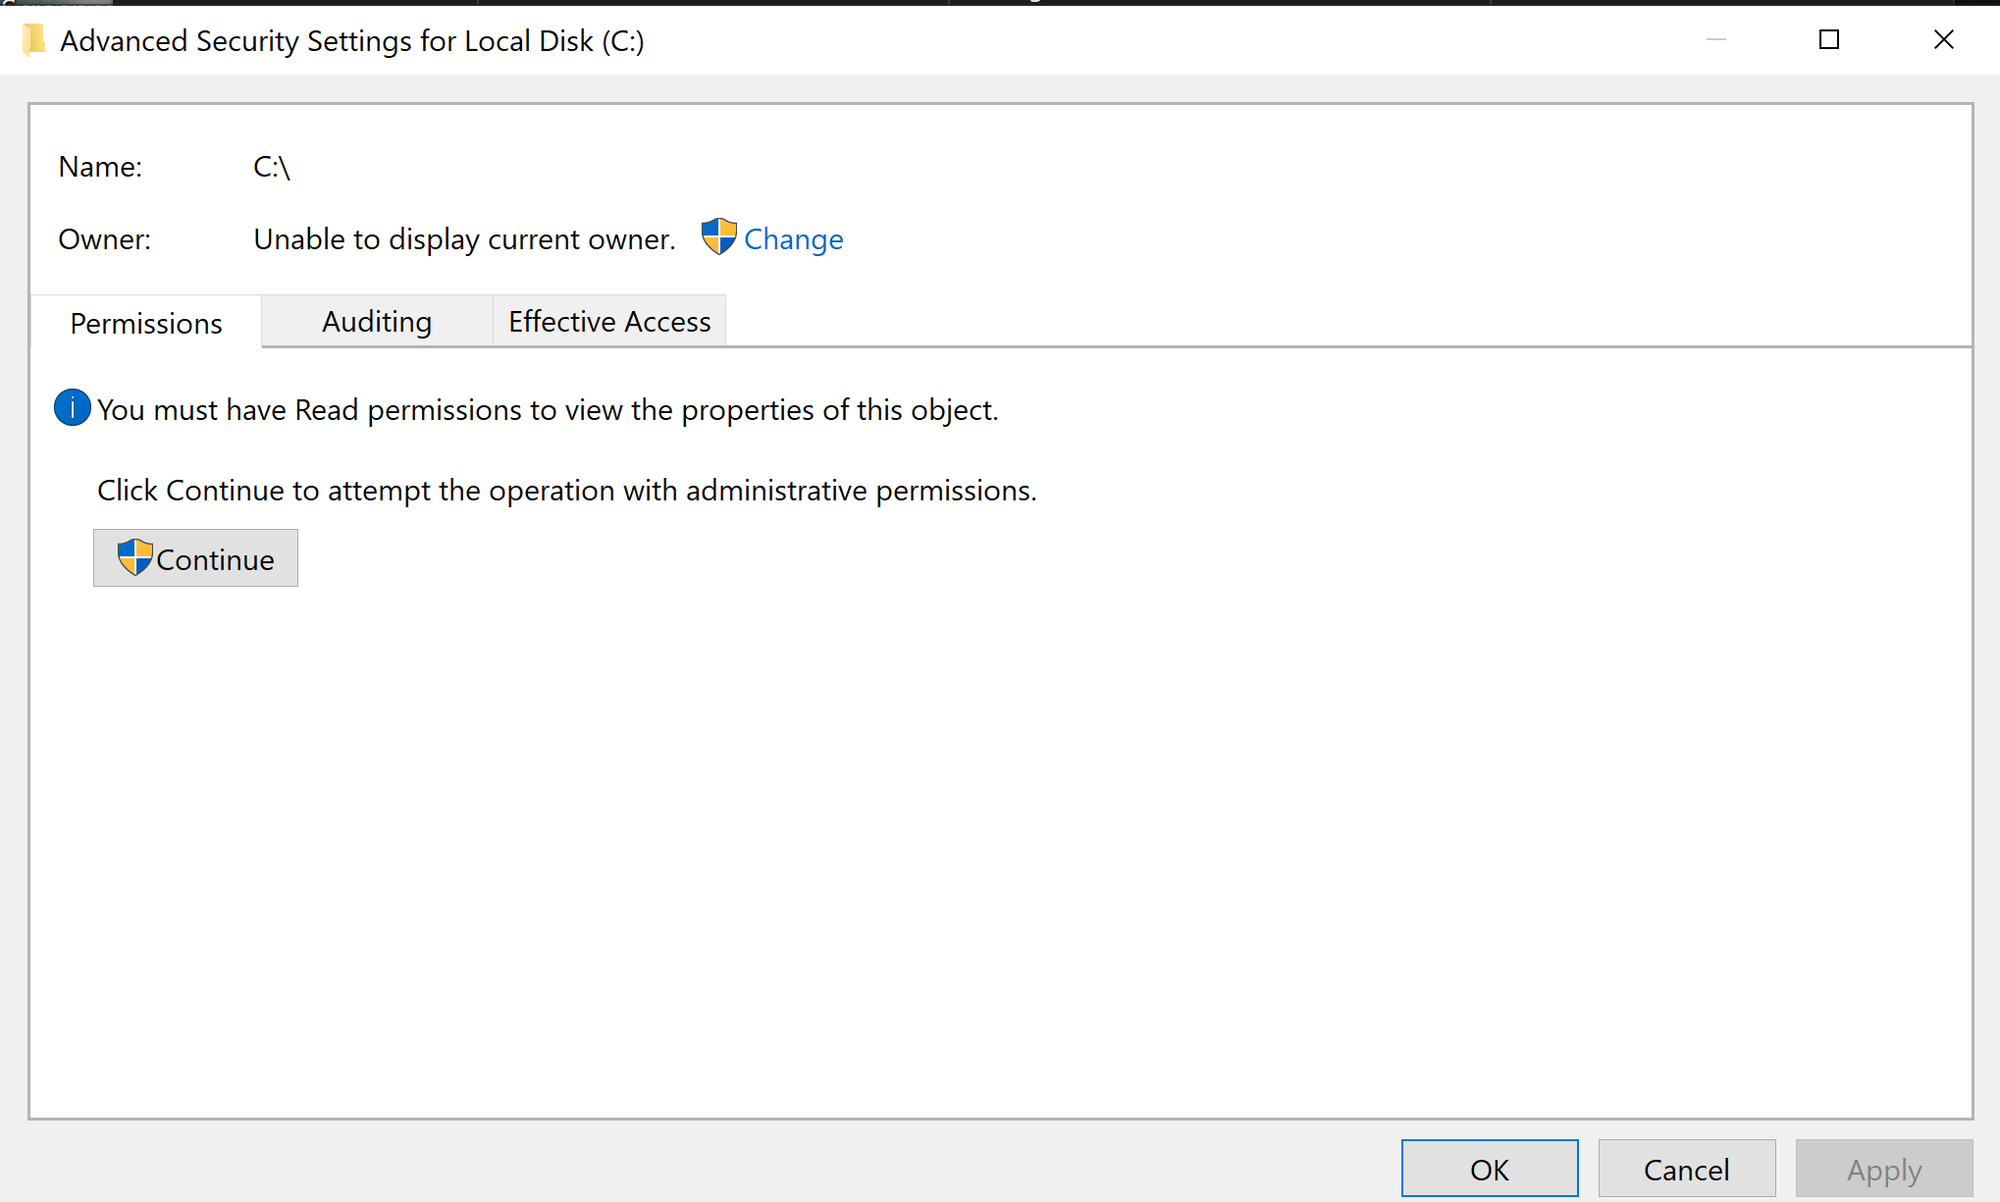 I lost all permission to my laptop windows 10 4b9afd30-cdeb-4630-a4a8-834c5e445789?upload=true.png